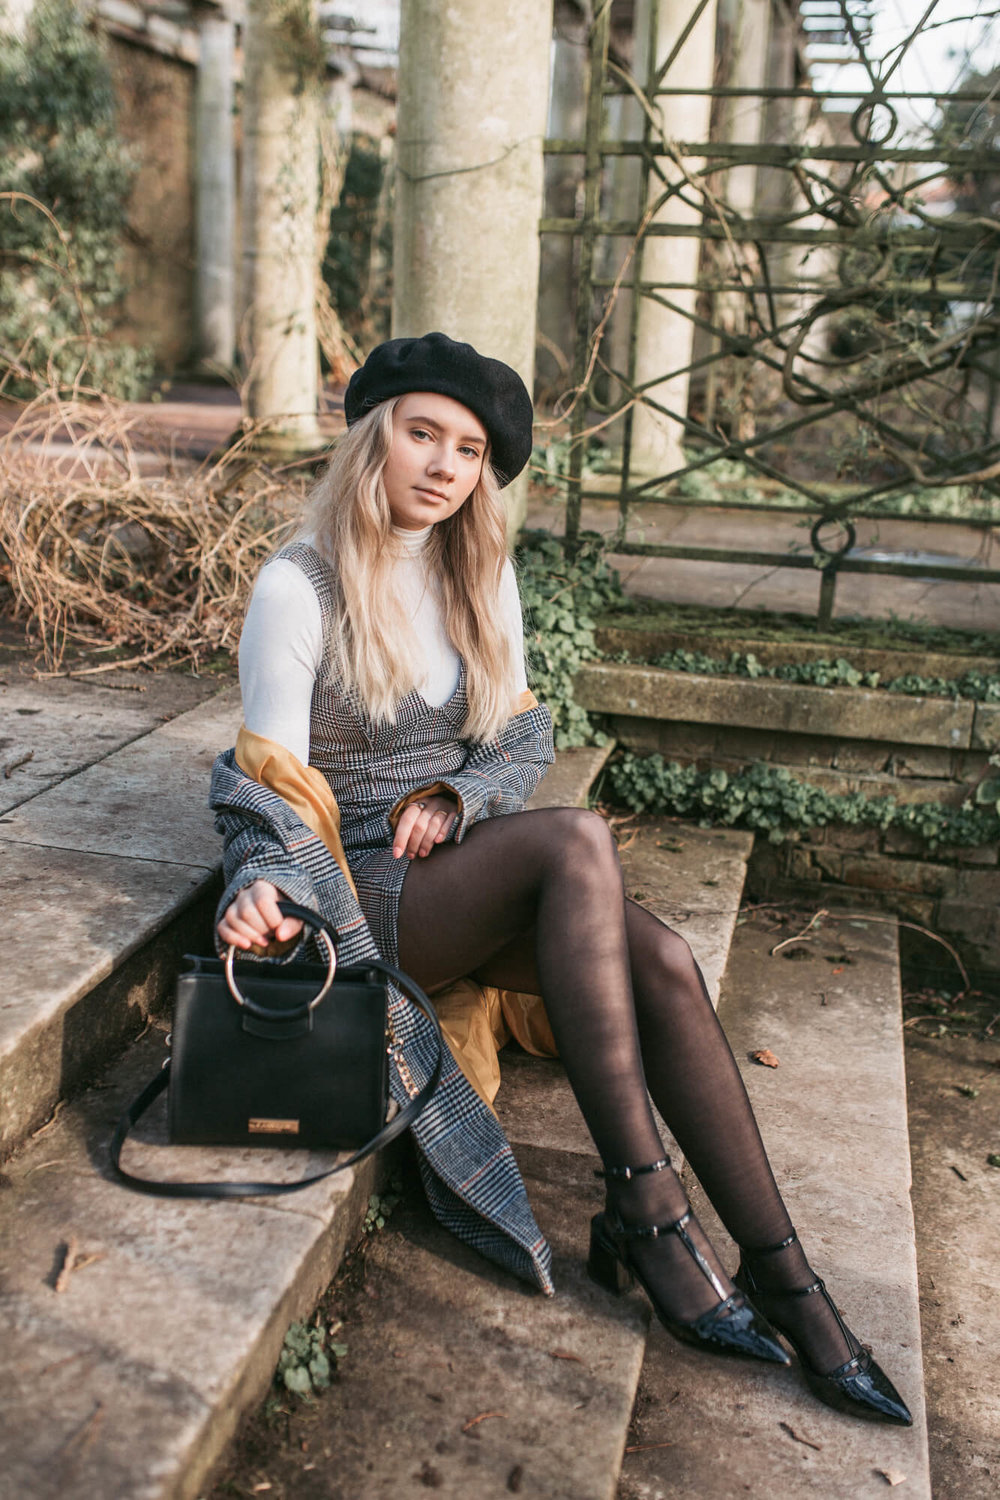 Influencer profiles - Stand out with high quality images and never run out of content for your social medias, starting from £150 (subscription deals available).